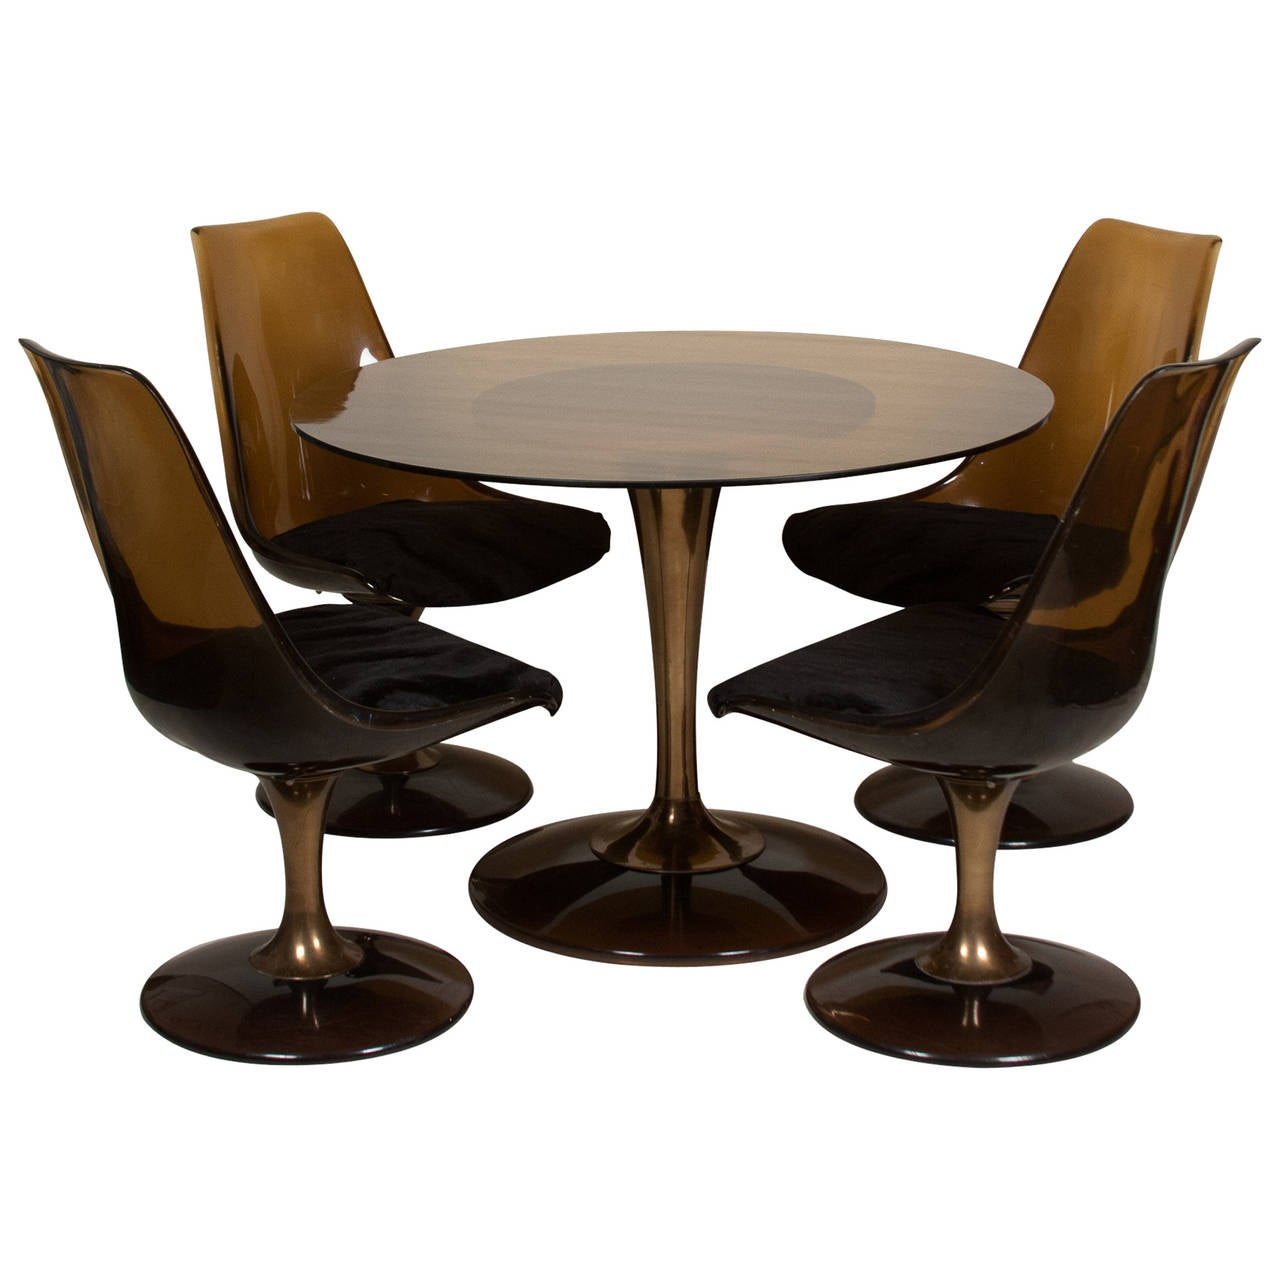 1970s amber glass top tulip dining table and chairs at 1stdibs for Glass top dining table sets